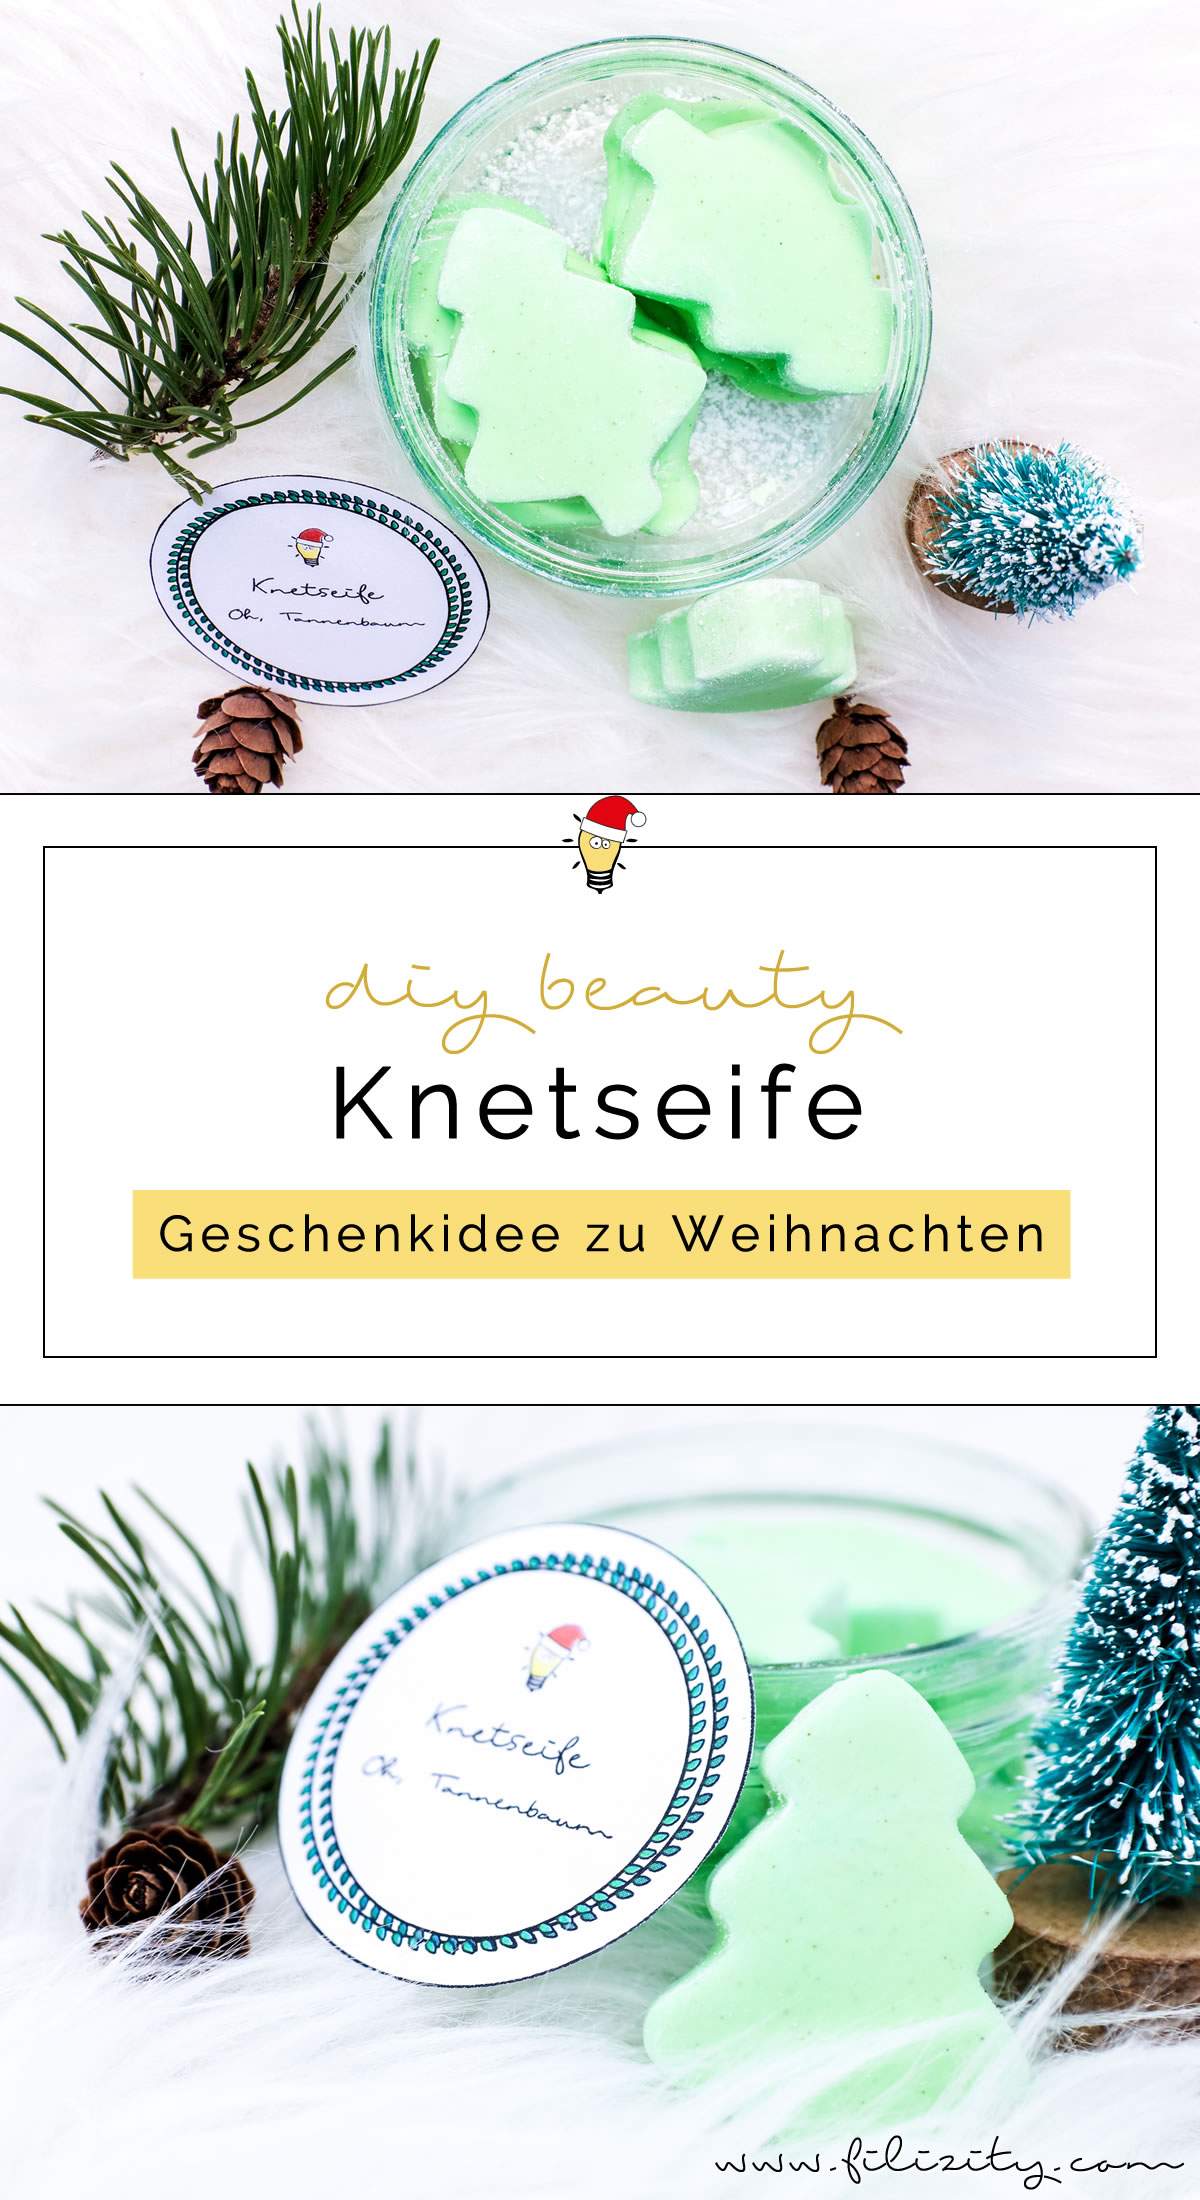 weihnachts geschenkidee diy knetseife tannenbaum selber machen diy blog aus. Black Bedroom Furniture Sets. Home Design Ideas